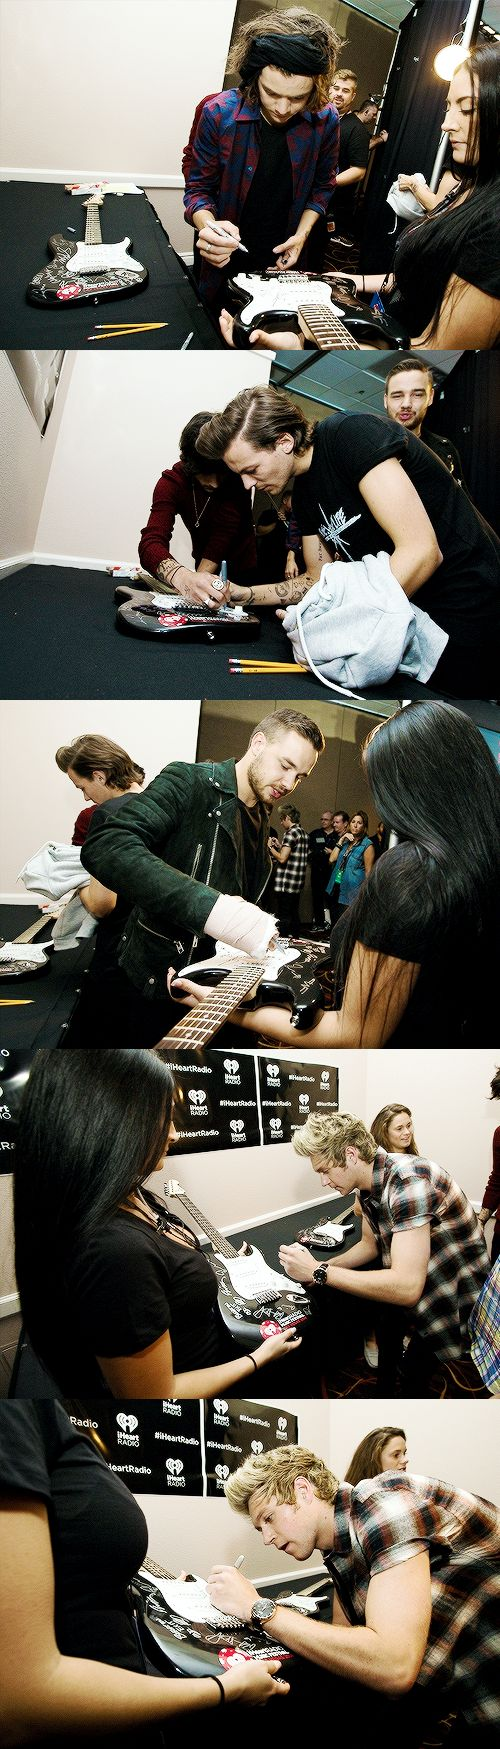 The boys signing a guitar backstage at the iheart radio festival. Poor Liam trying to sign with his cast.lol. 9.20.14